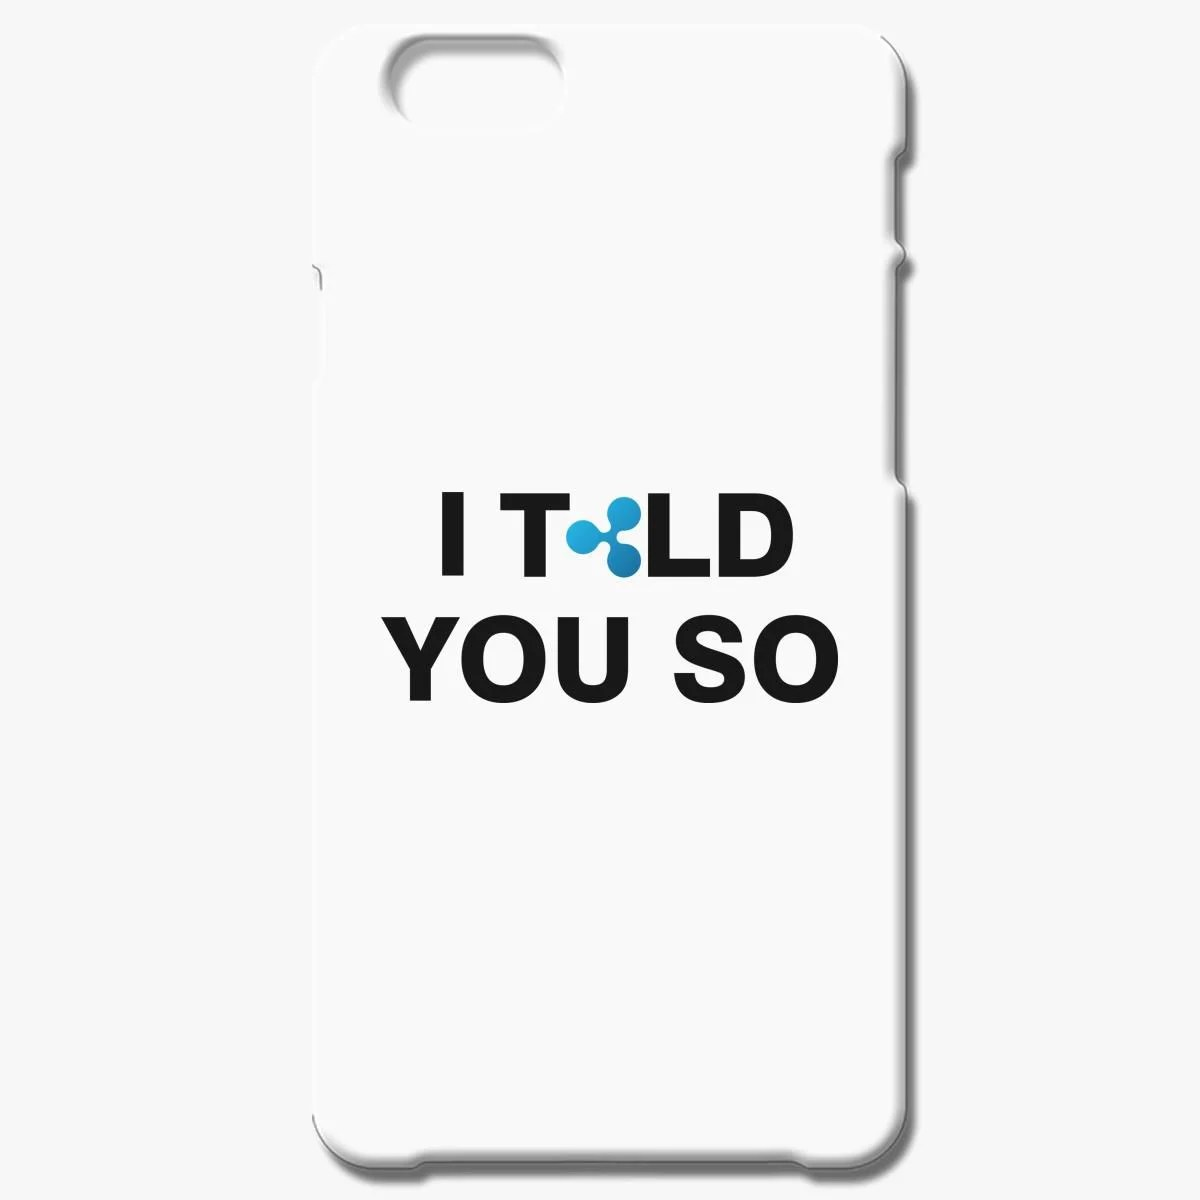 Ripple Coin I Told You So Iphone 7 Plus Case